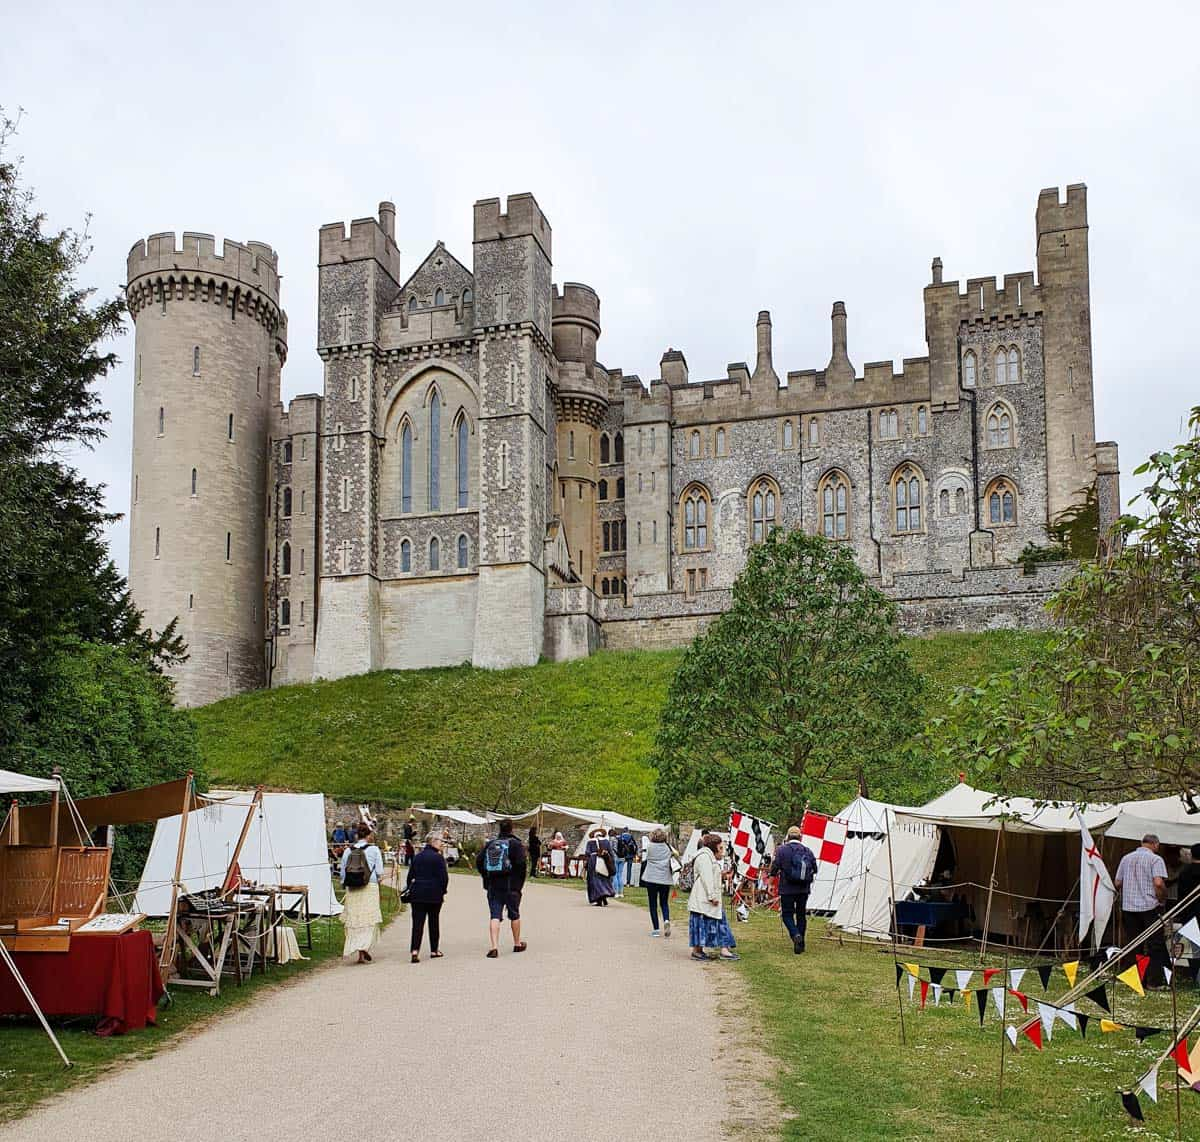 Arundel Castle with a market within its grounds makes for a great day trip from London.